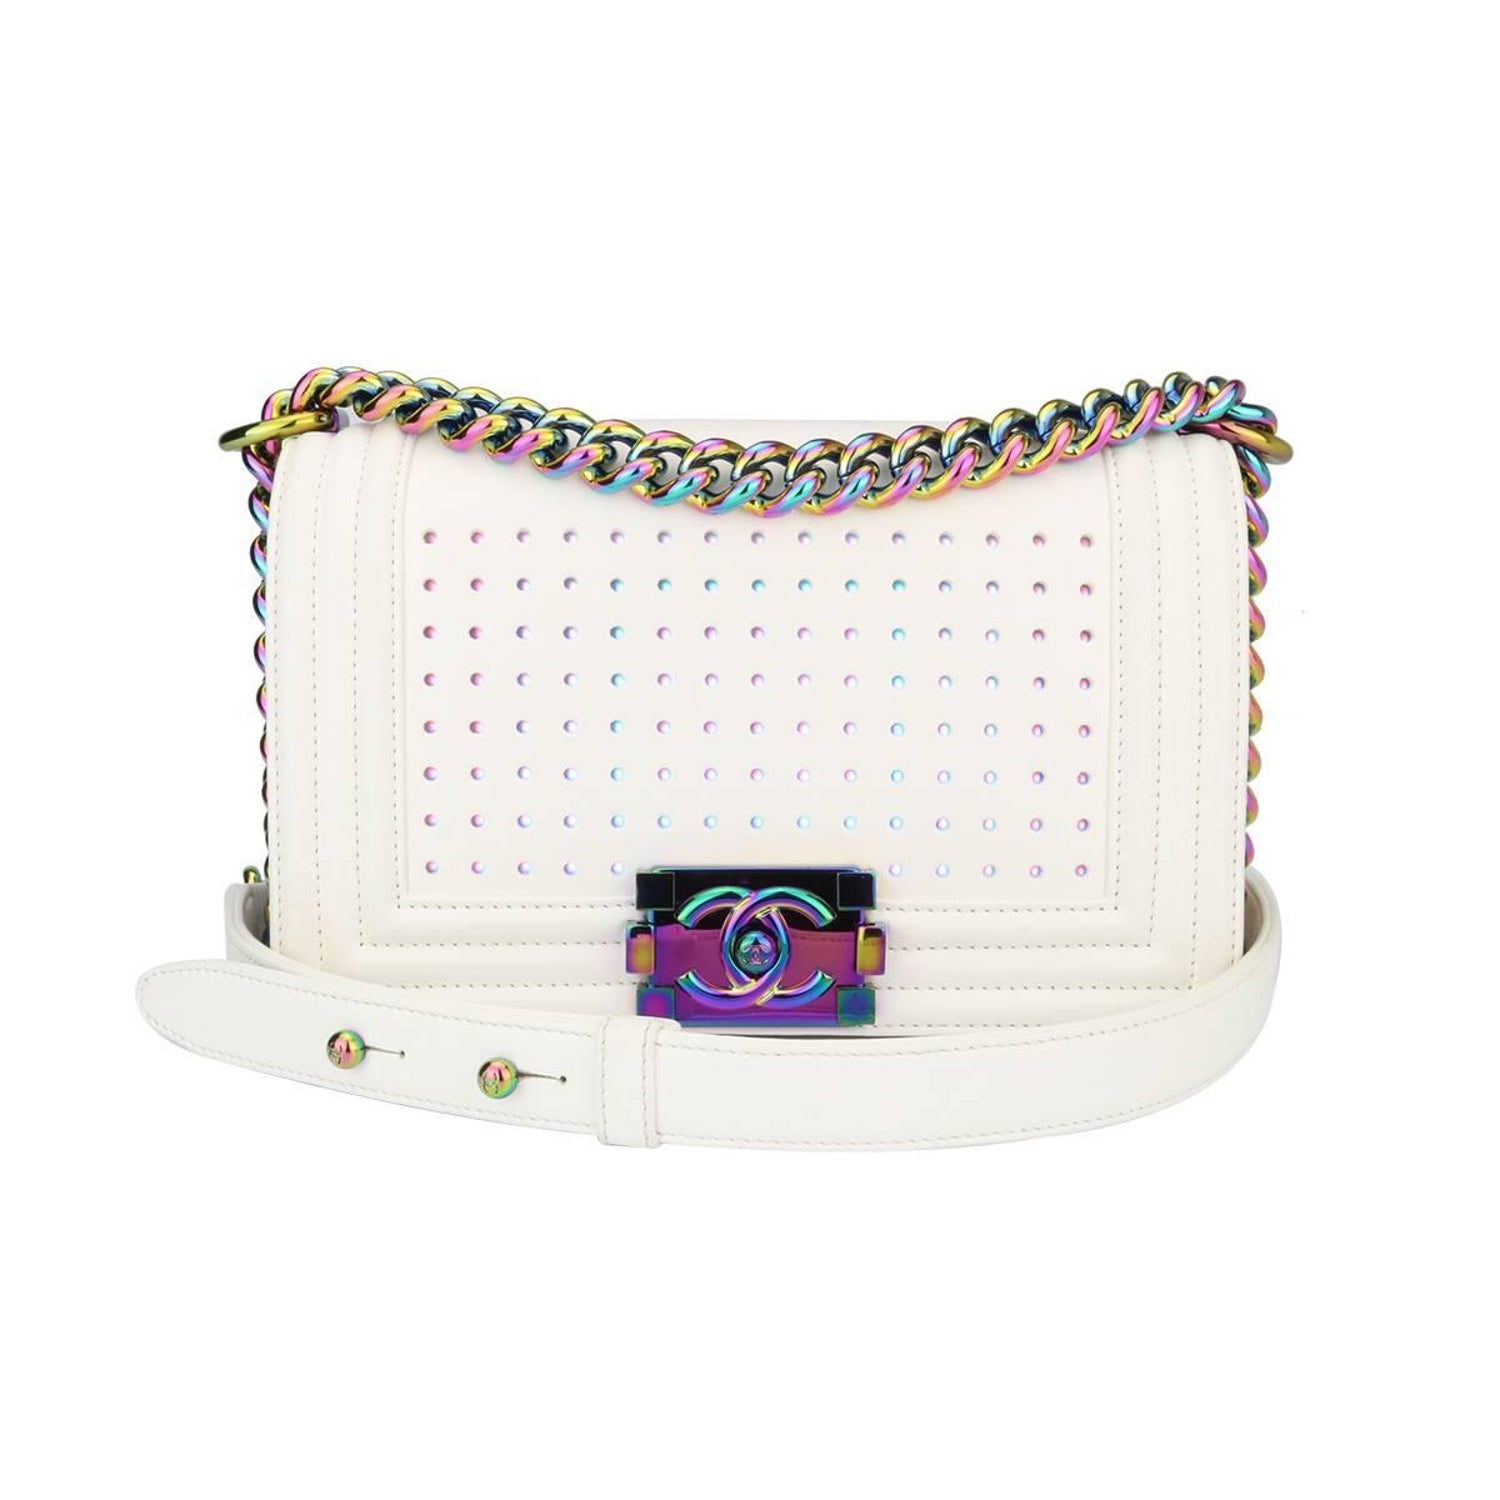 12e58d7bde9ad0 Chanel Small LED Boy White Lambskin Bag with Rainbow Hardware, 2017 For  Sale at 1stdibs